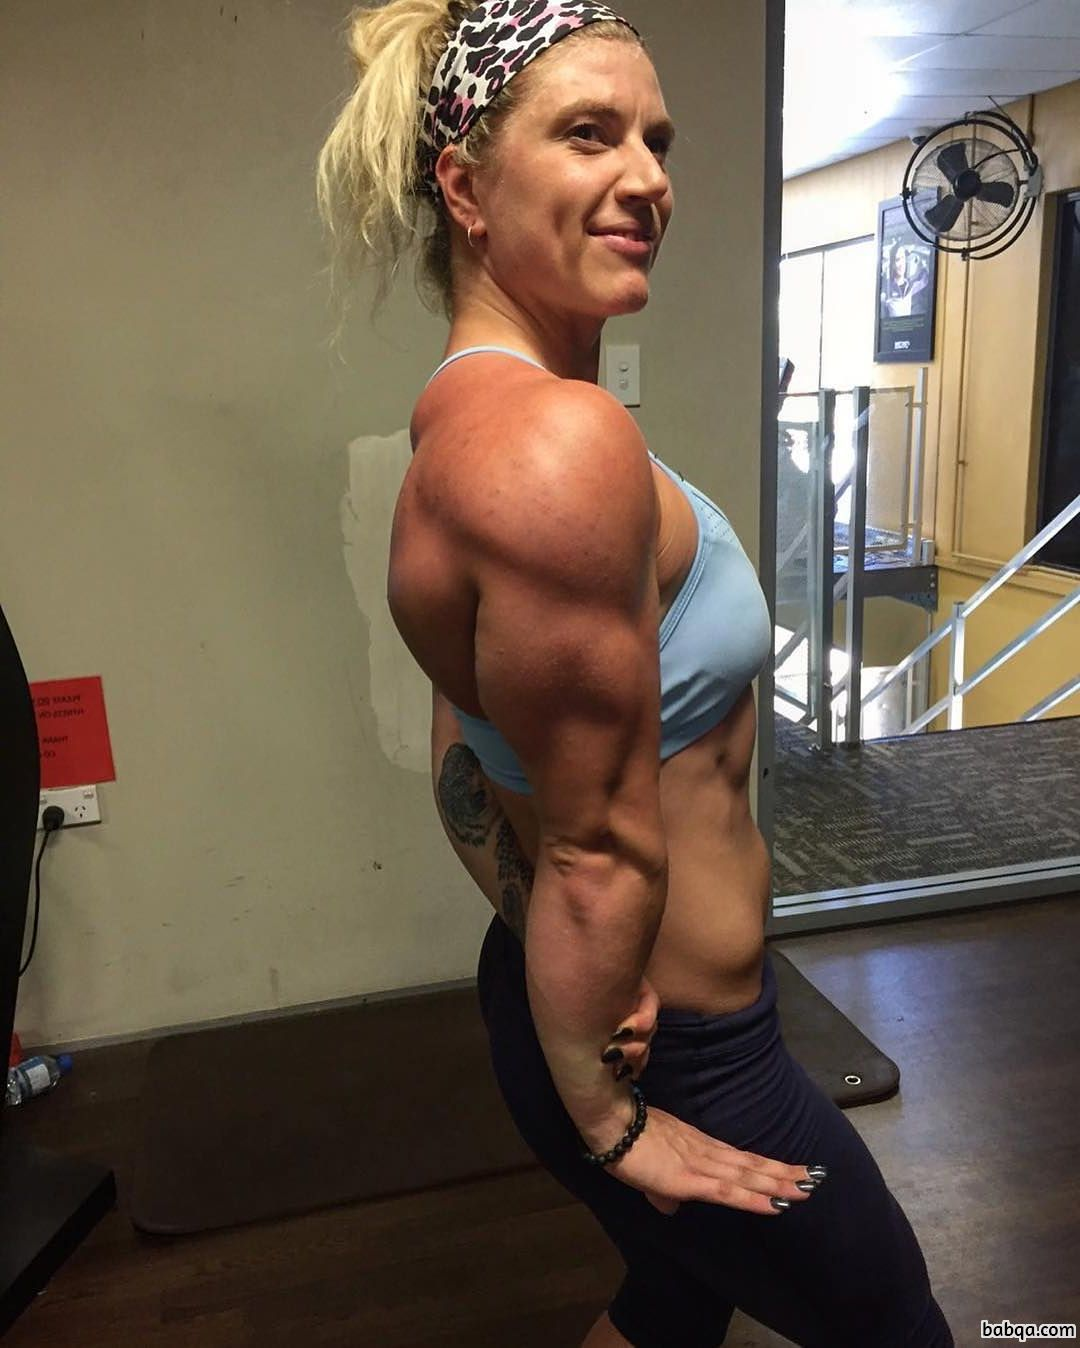 cute woman with muscular body and muscle biceps photo from flickr